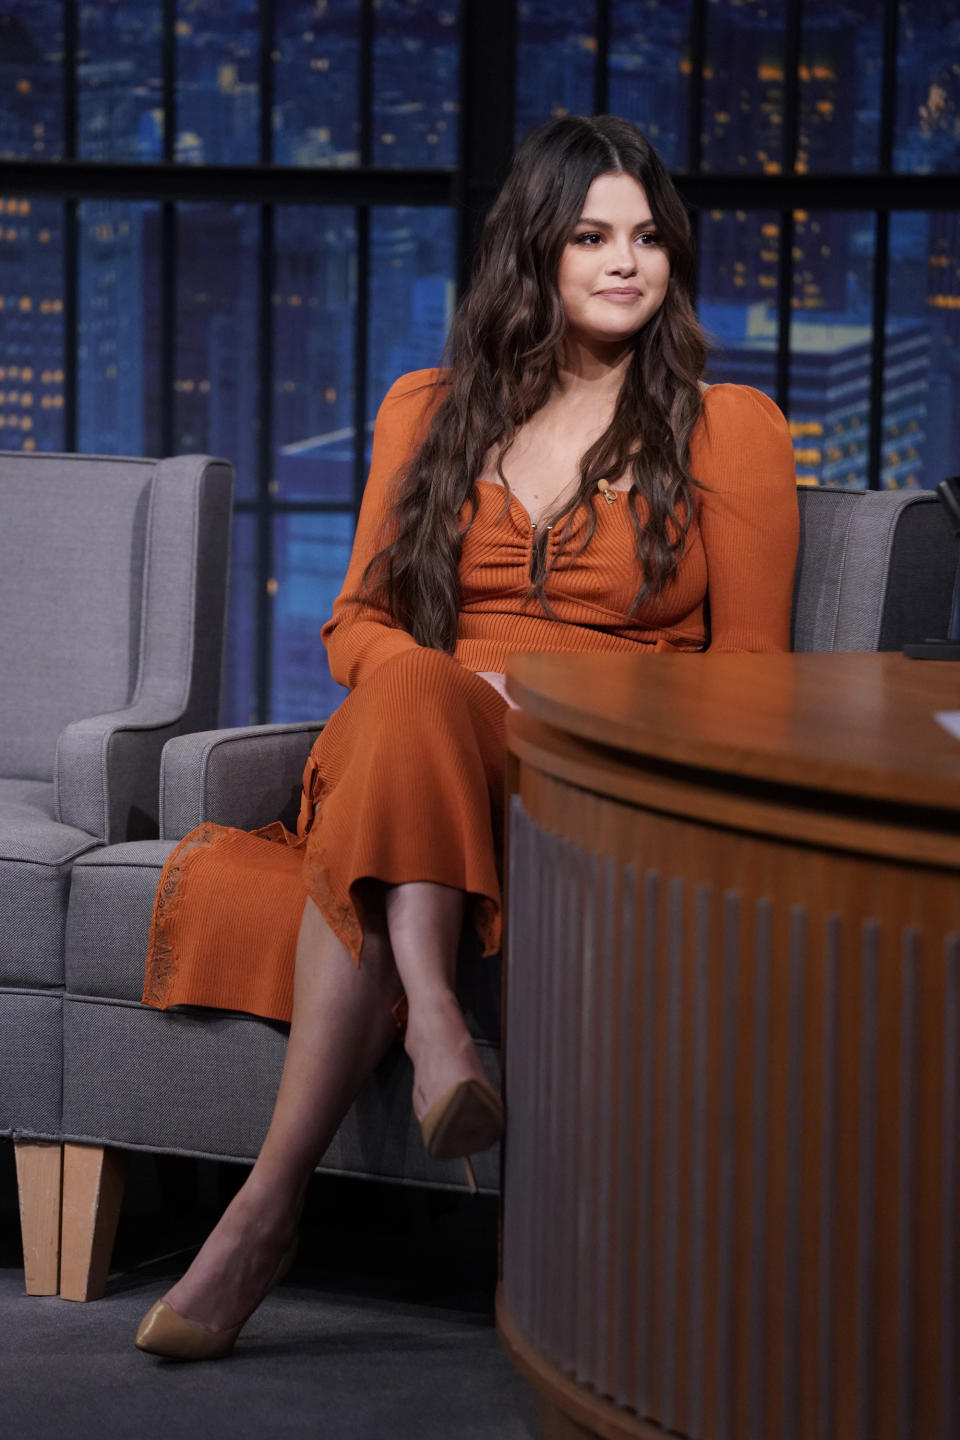 LATE NIGHT WITH SETH MEYERS -- Episode 1188A -- Pictured: Actress and musician Selena Gomez during an interview on September 08, 2021 -- (Photo by: Lloyd Bishop/NBC/NBCU Photo Bank via Getty Images)